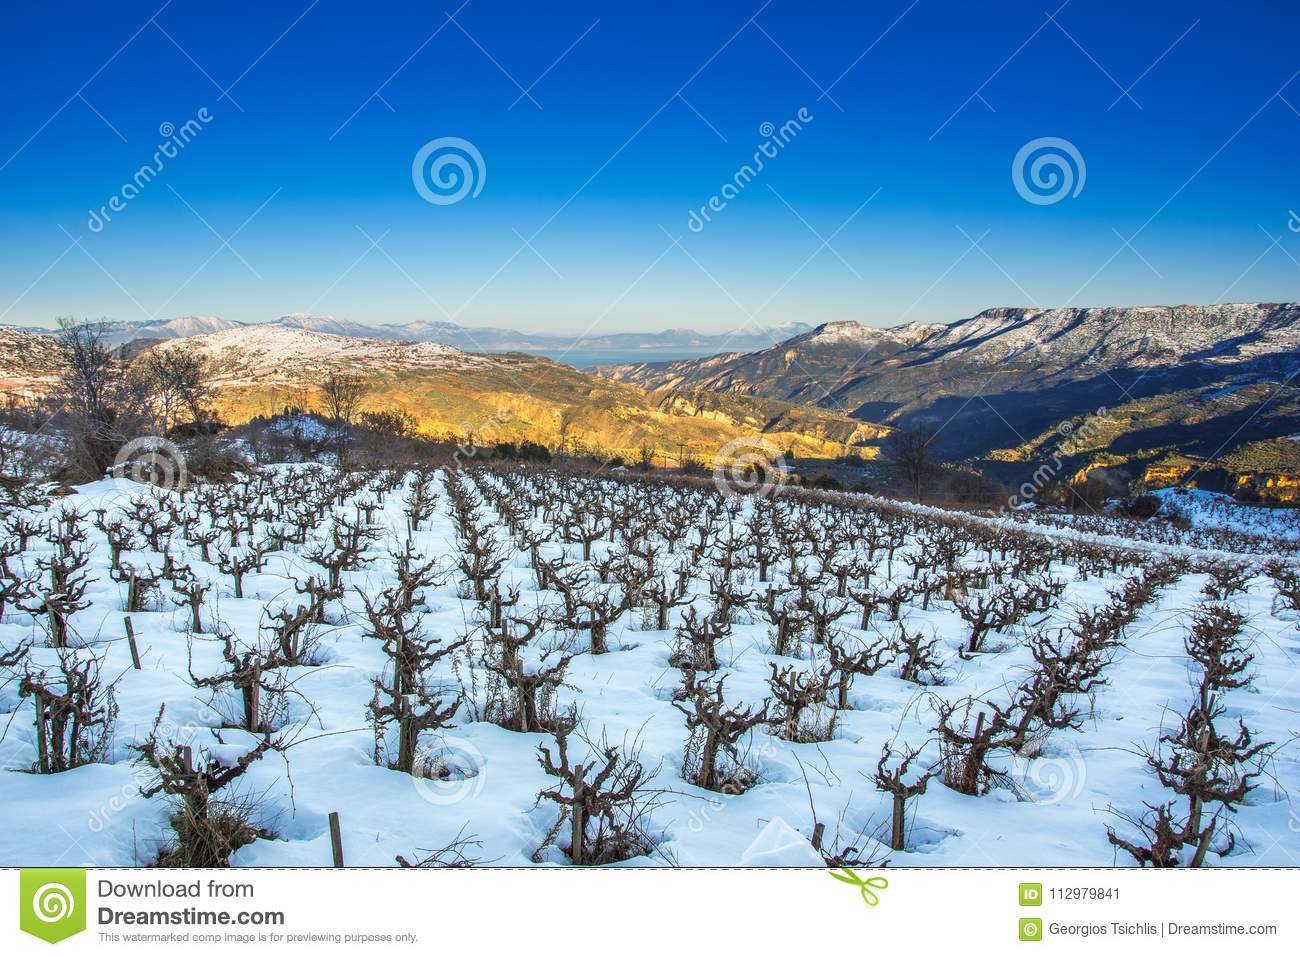 Winter landscape with snow, with a field of grapevines and clear blue sky, Trikala Korinthias.